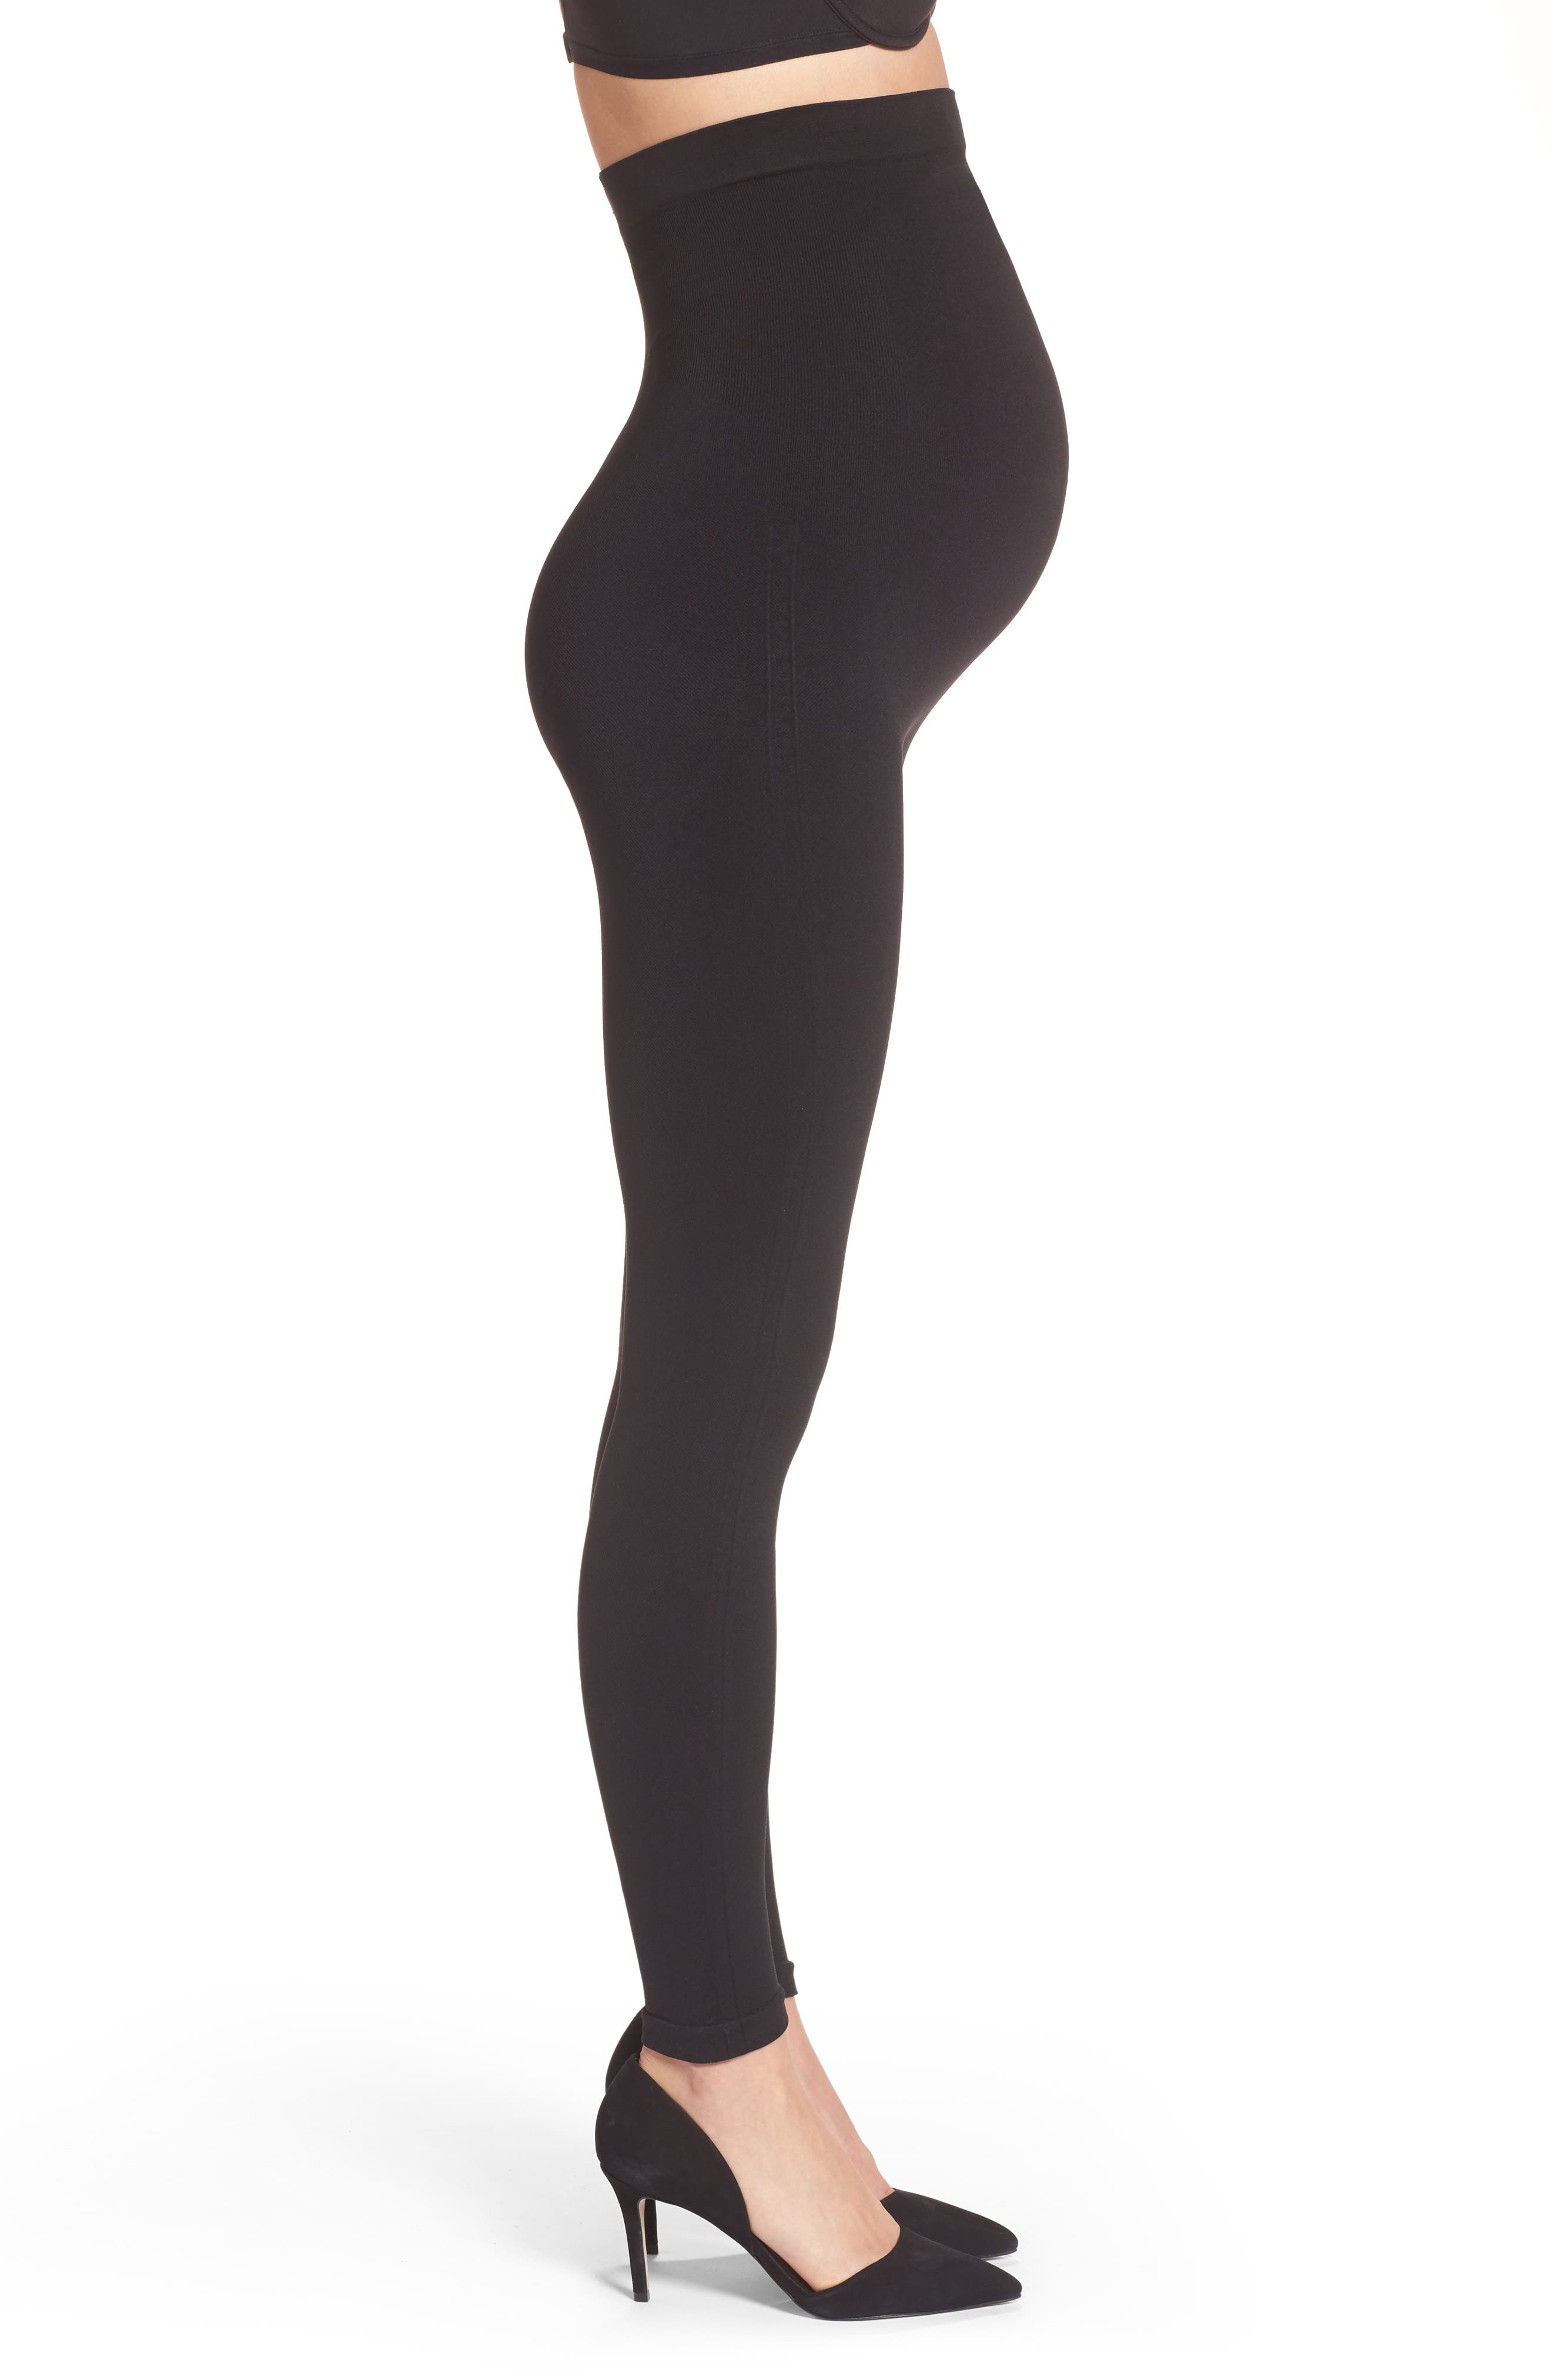 Mama Look at Me Now Seamless Maternity Leggings,                             Alternate thumbnail 3, color,                             VERY BLACK